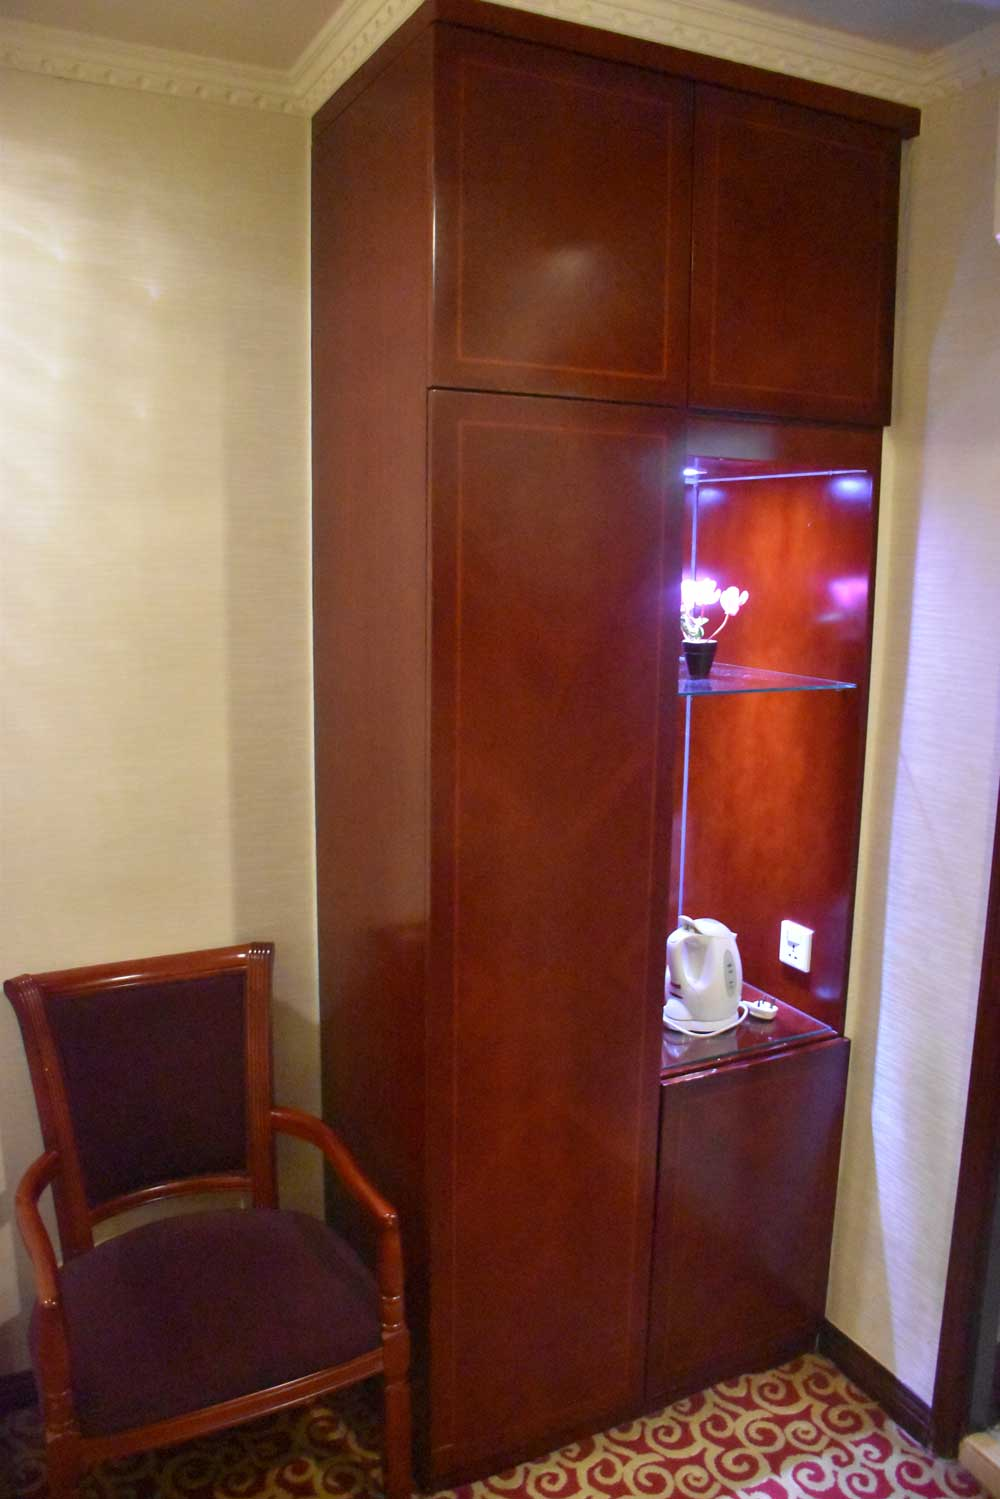 East Asia Hotel chair and wood cabinet